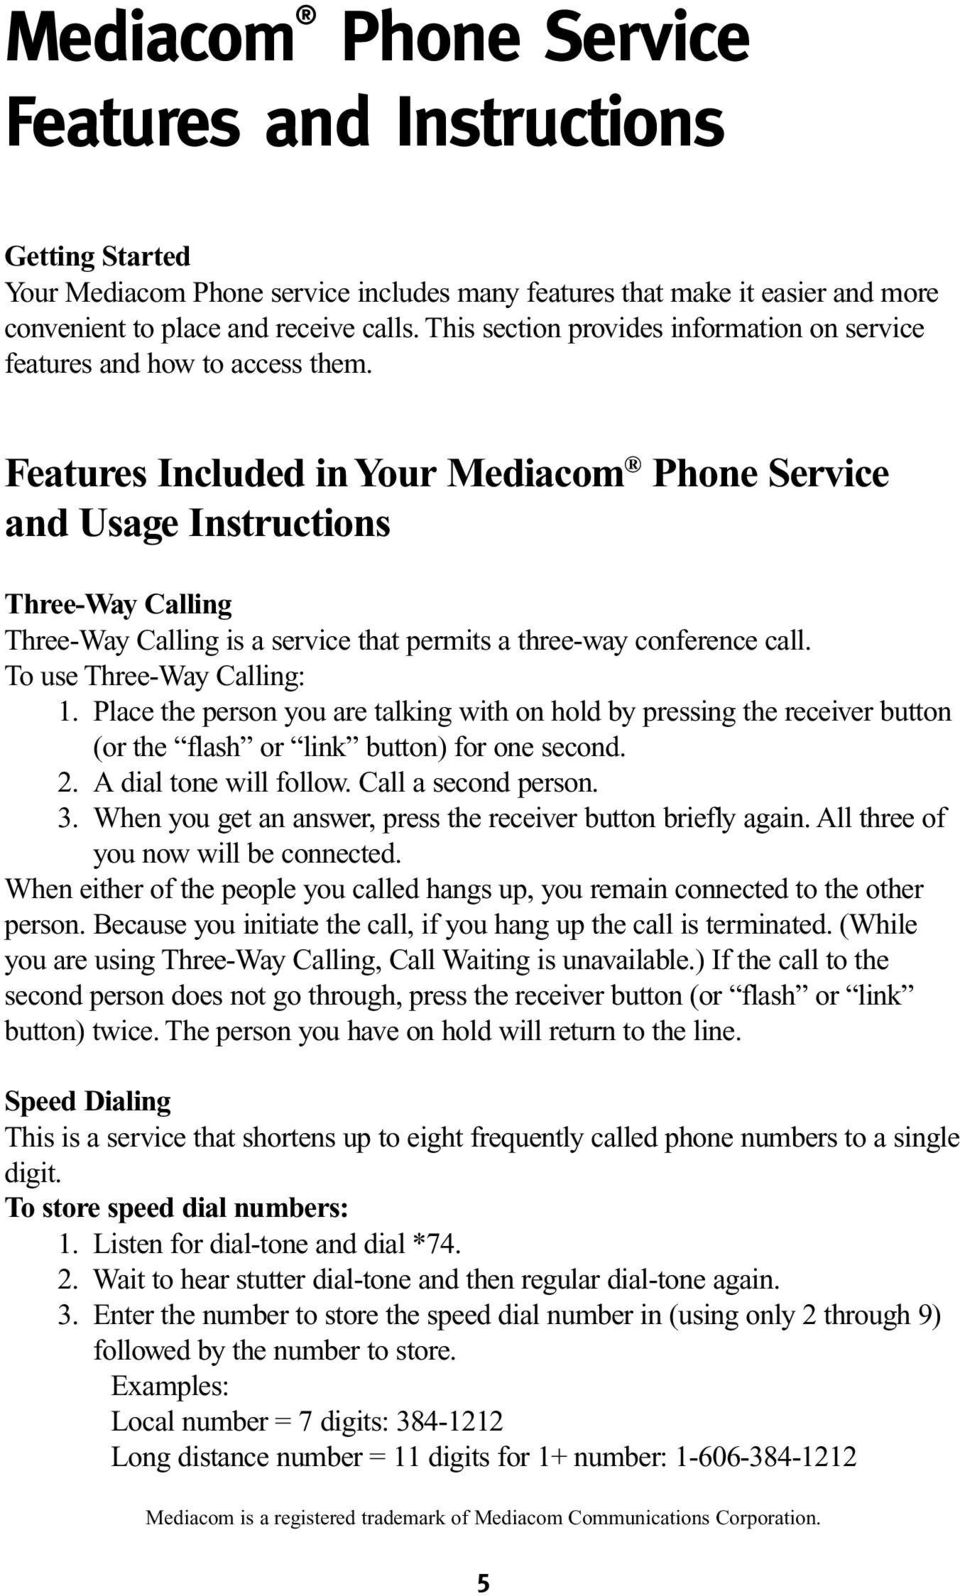 Features Included in Your Mediacom Phone Service and Usage Instructions Three-Way Calling Three-Way Calling is a service that permits a three-way conference call. To use Three-Way Calling: 1.